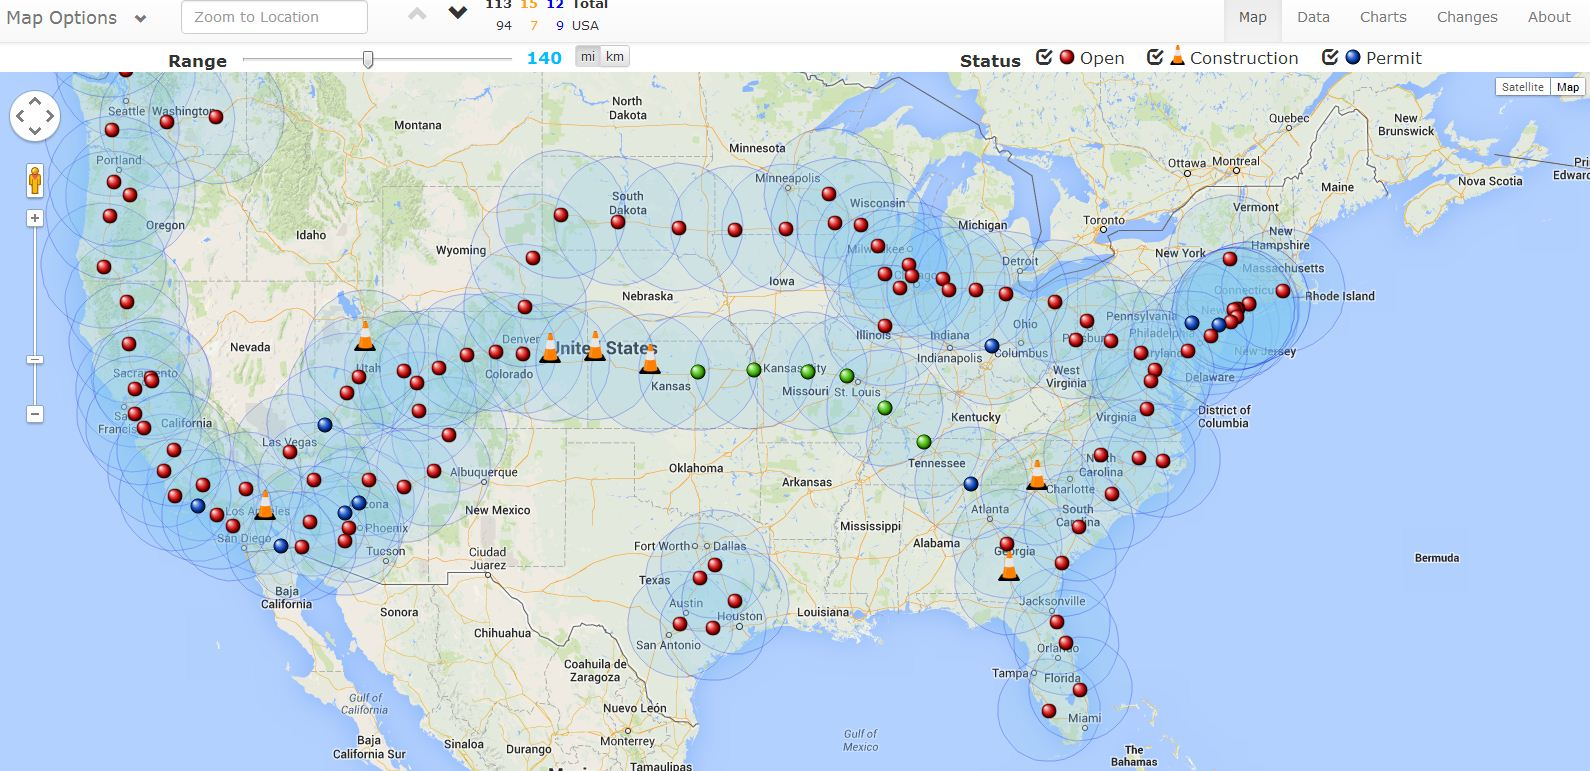 Supercharger Map Enlarged.JPG